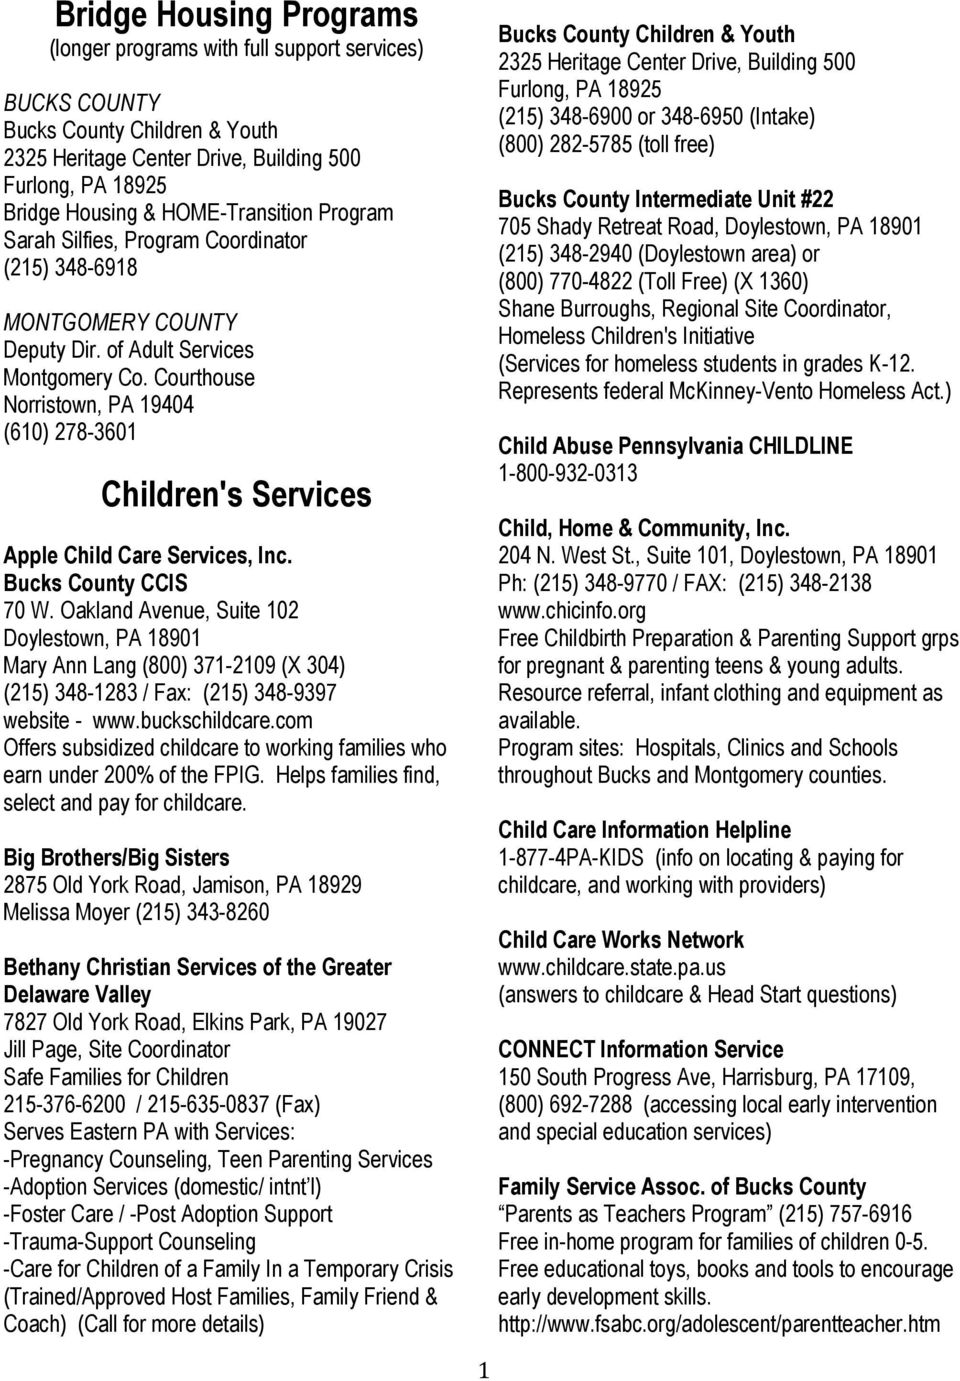 Courthouse Norristown, PA 19404 (610) 278-3601 Children's Services Apple Child Care Services, Inc. Bucks County CCIS 70 W.